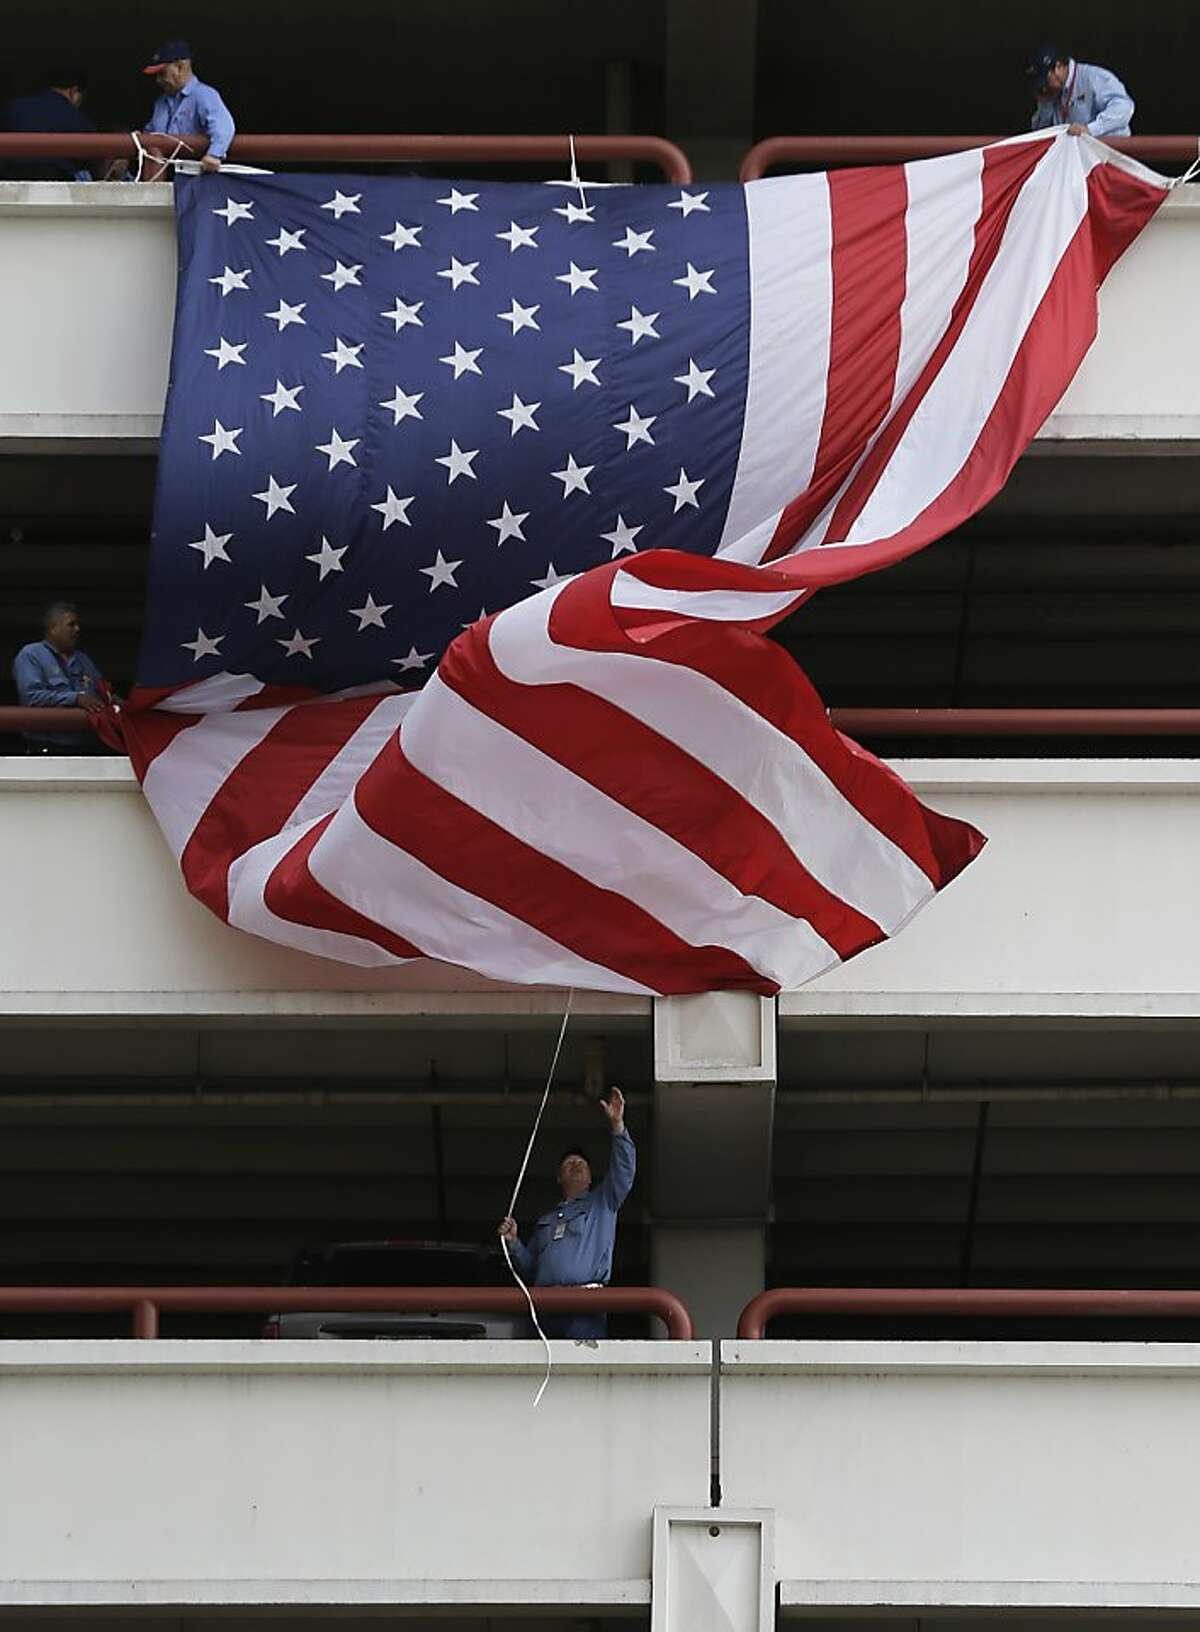 In preparation for Veteran's Day, workers hang a three-story long U.S. Flag off a parking garage, Thursday, Nov. 7, 2013, in downtown San Antonio. Veteran's Day is Monday. (AP Photo/Eric Gay)